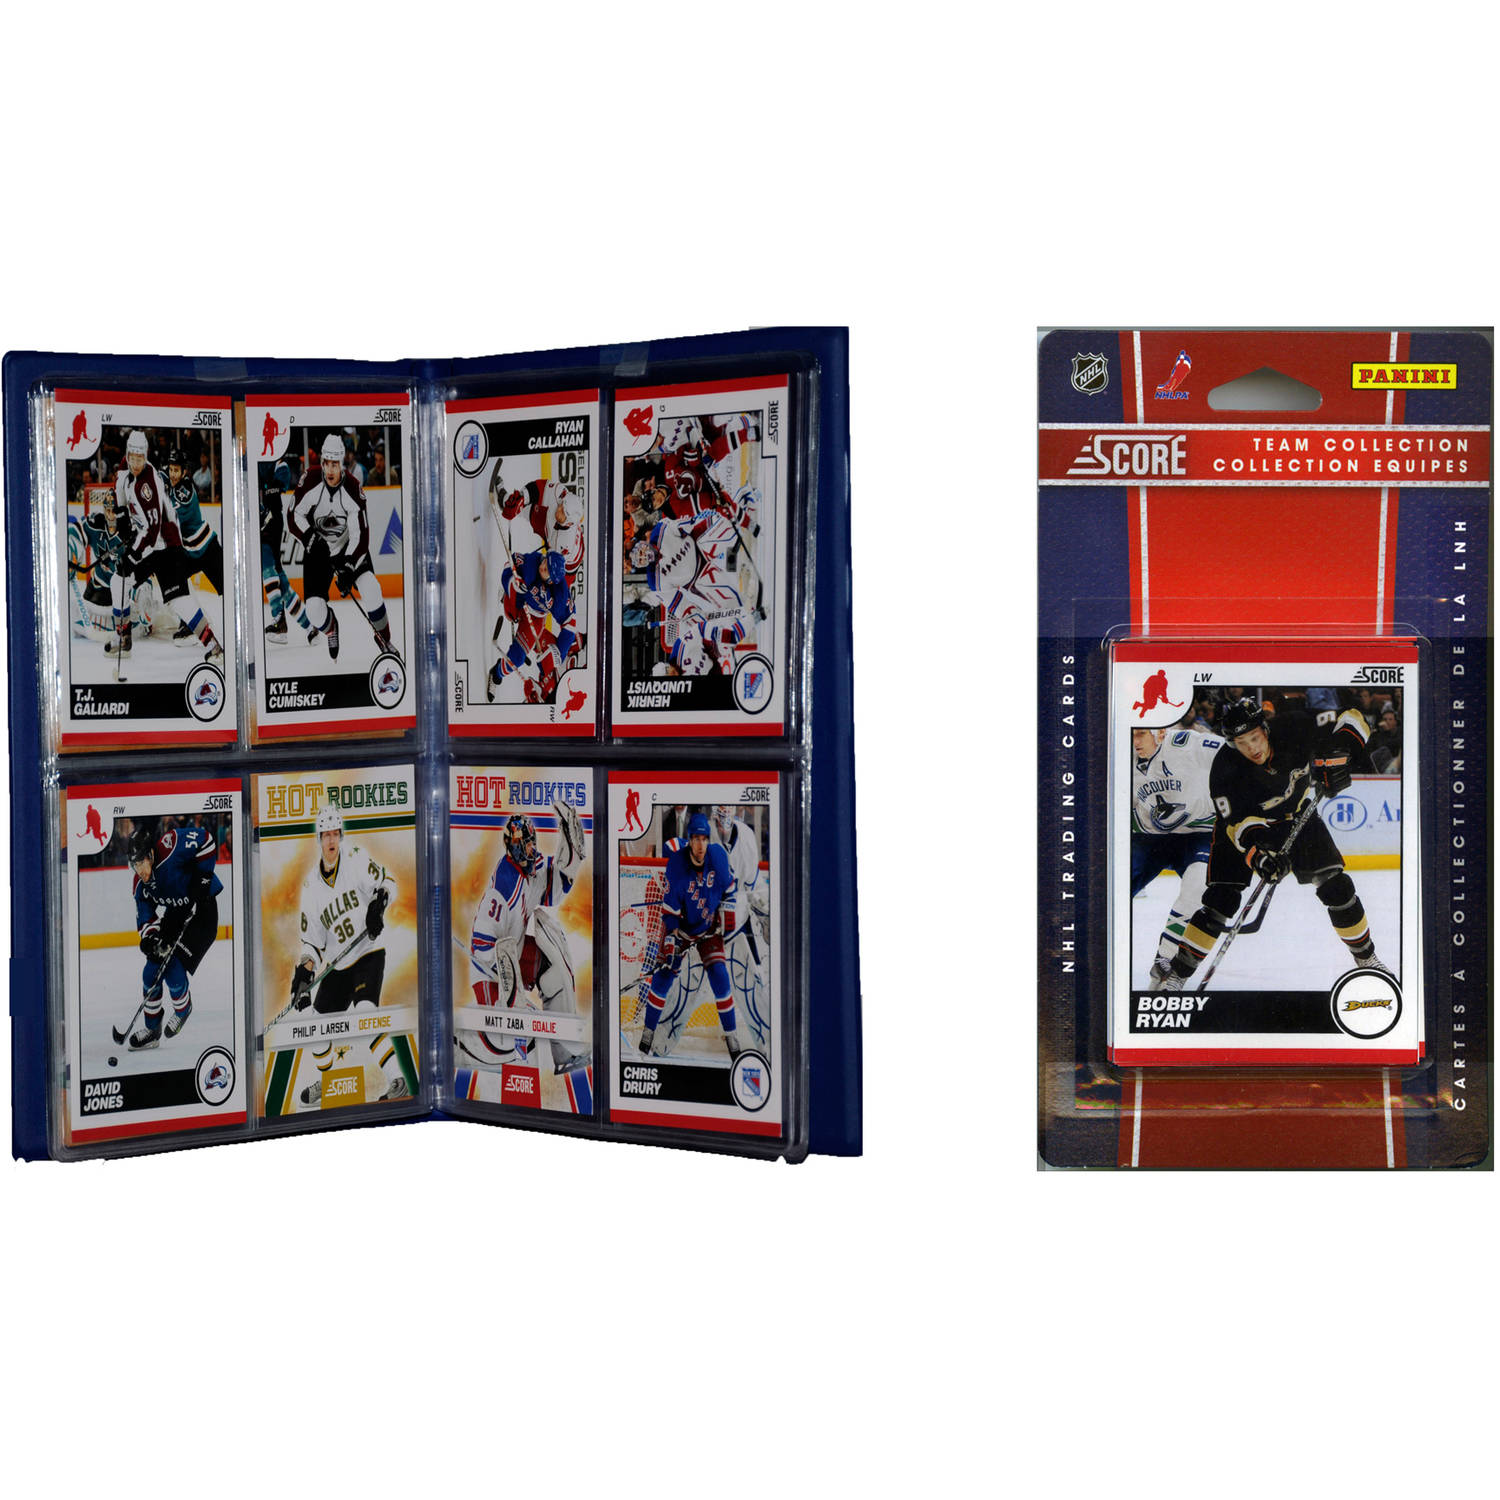 C&I Collectables NHL Anaheim Ducks Licensed 2010 Score Team Set and Storage Album